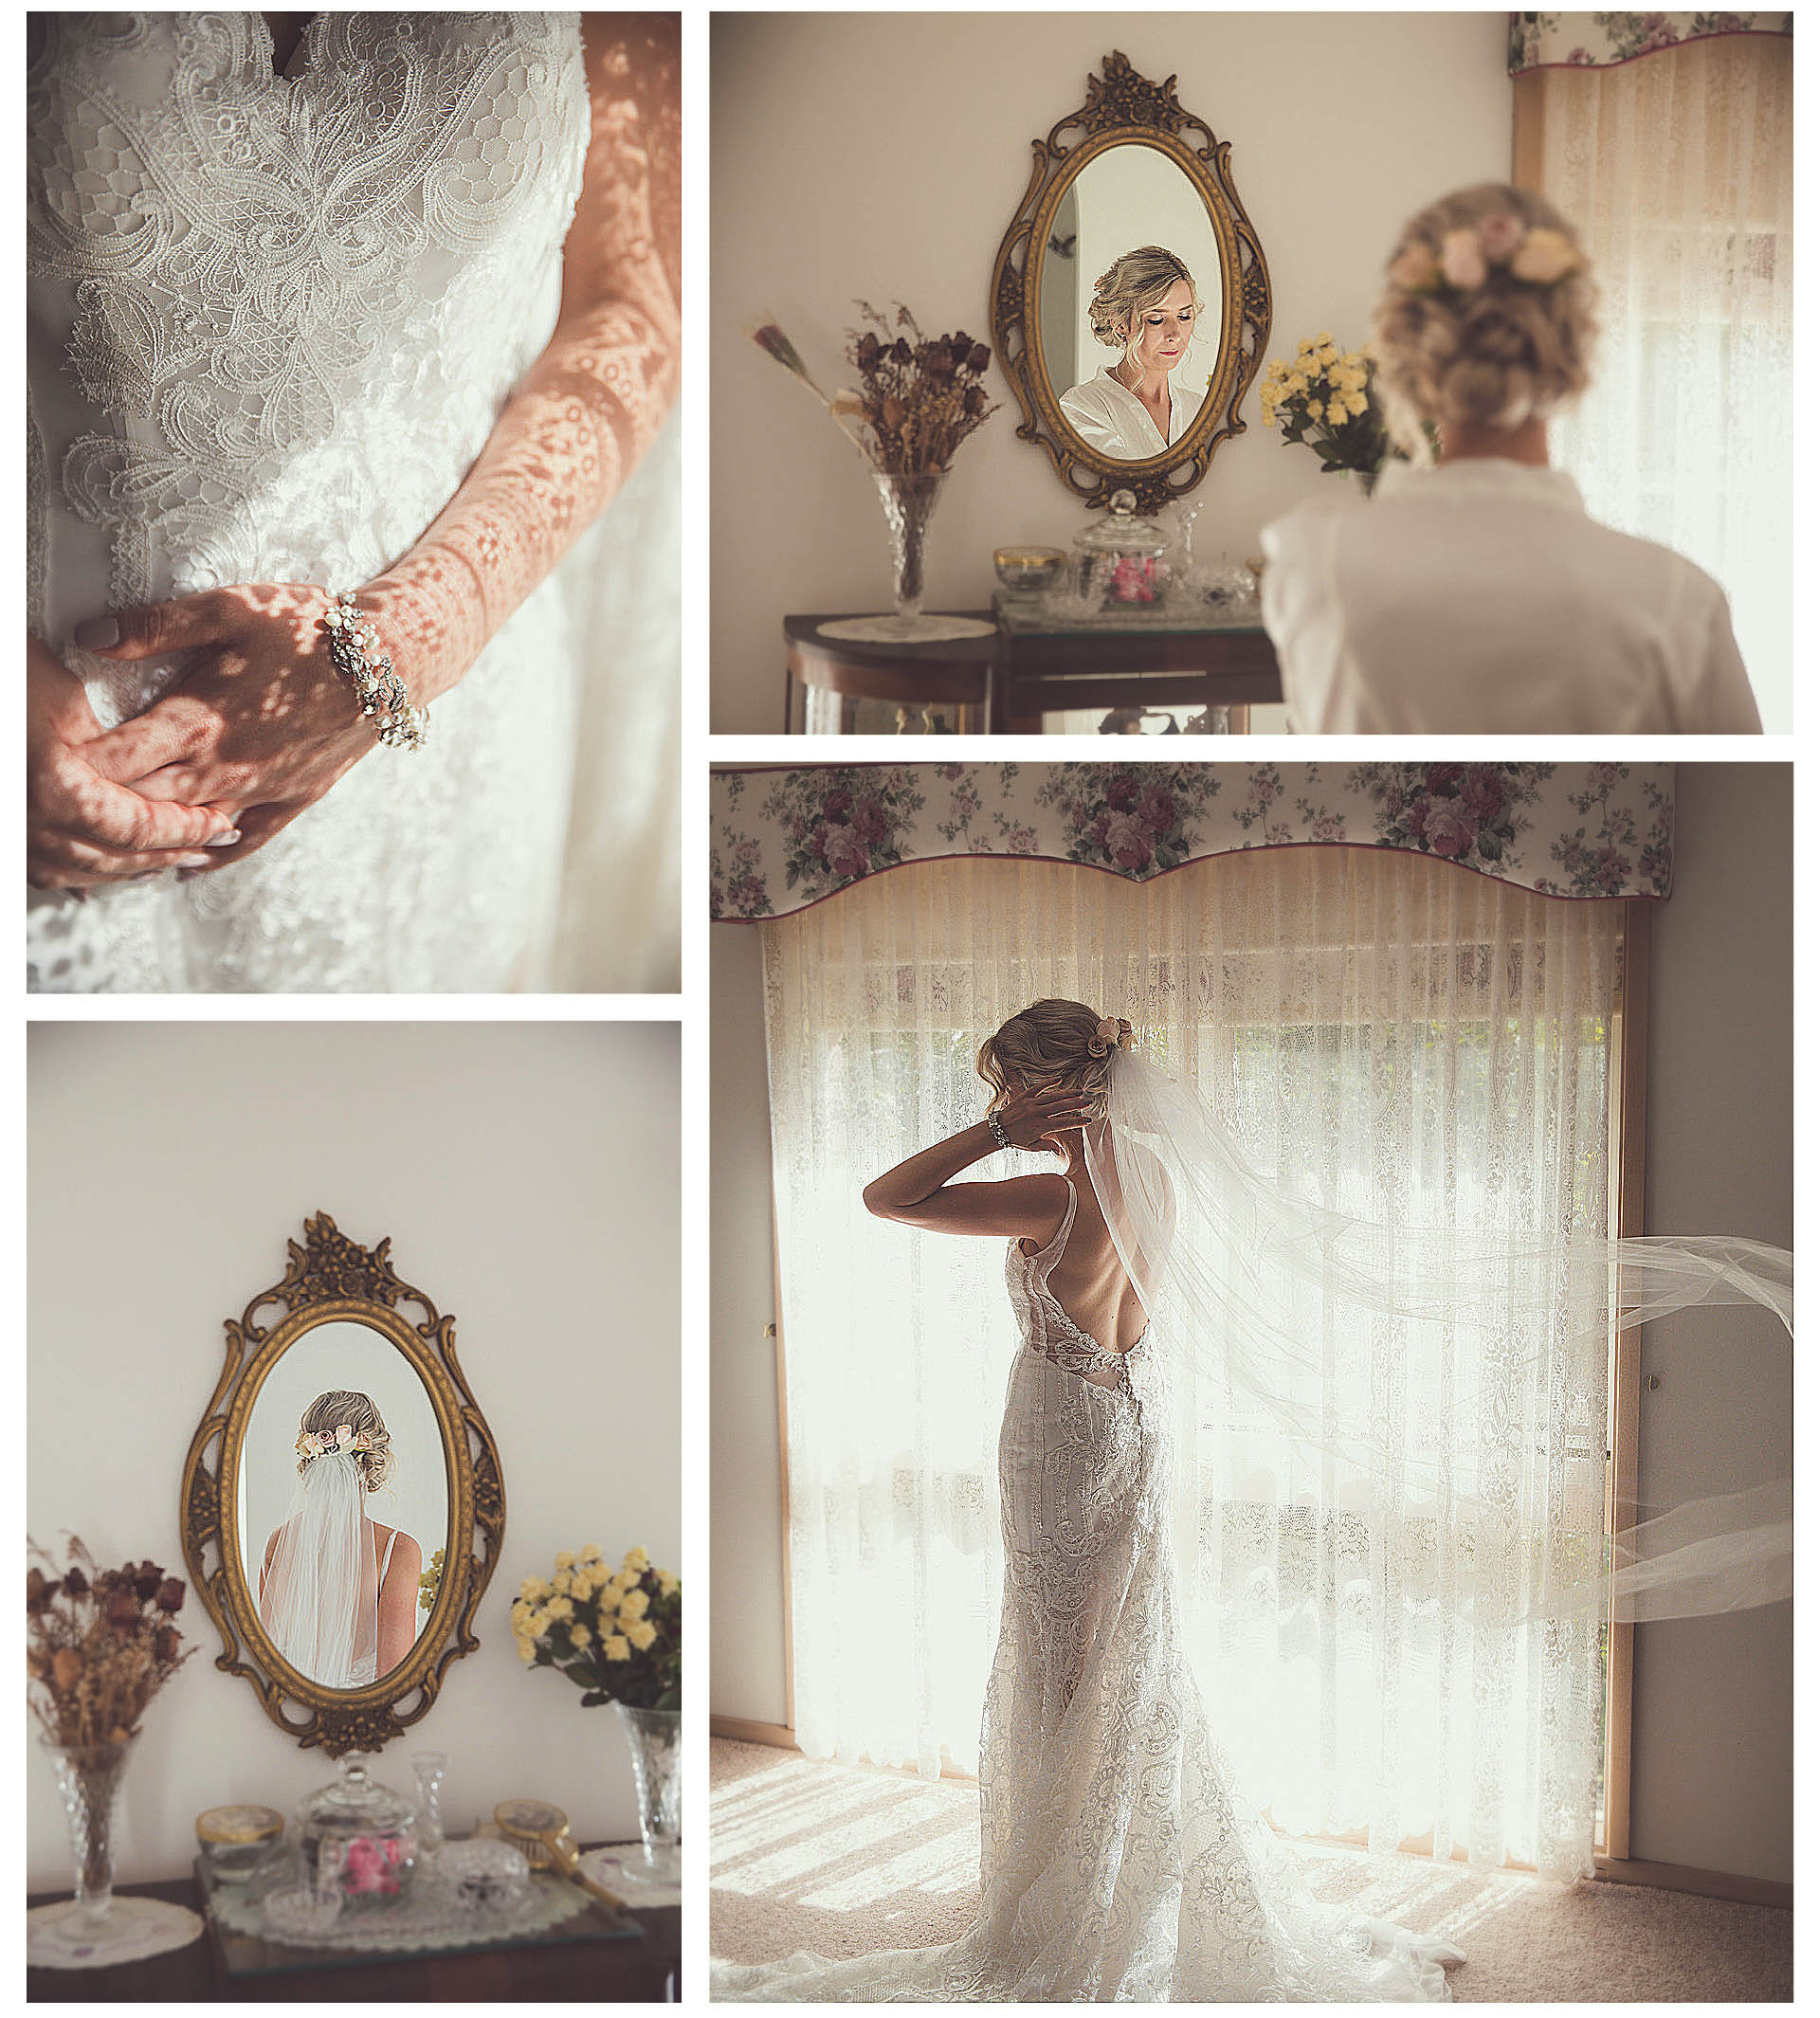 The bride looks at herself in the mirror and dresses very beautifully